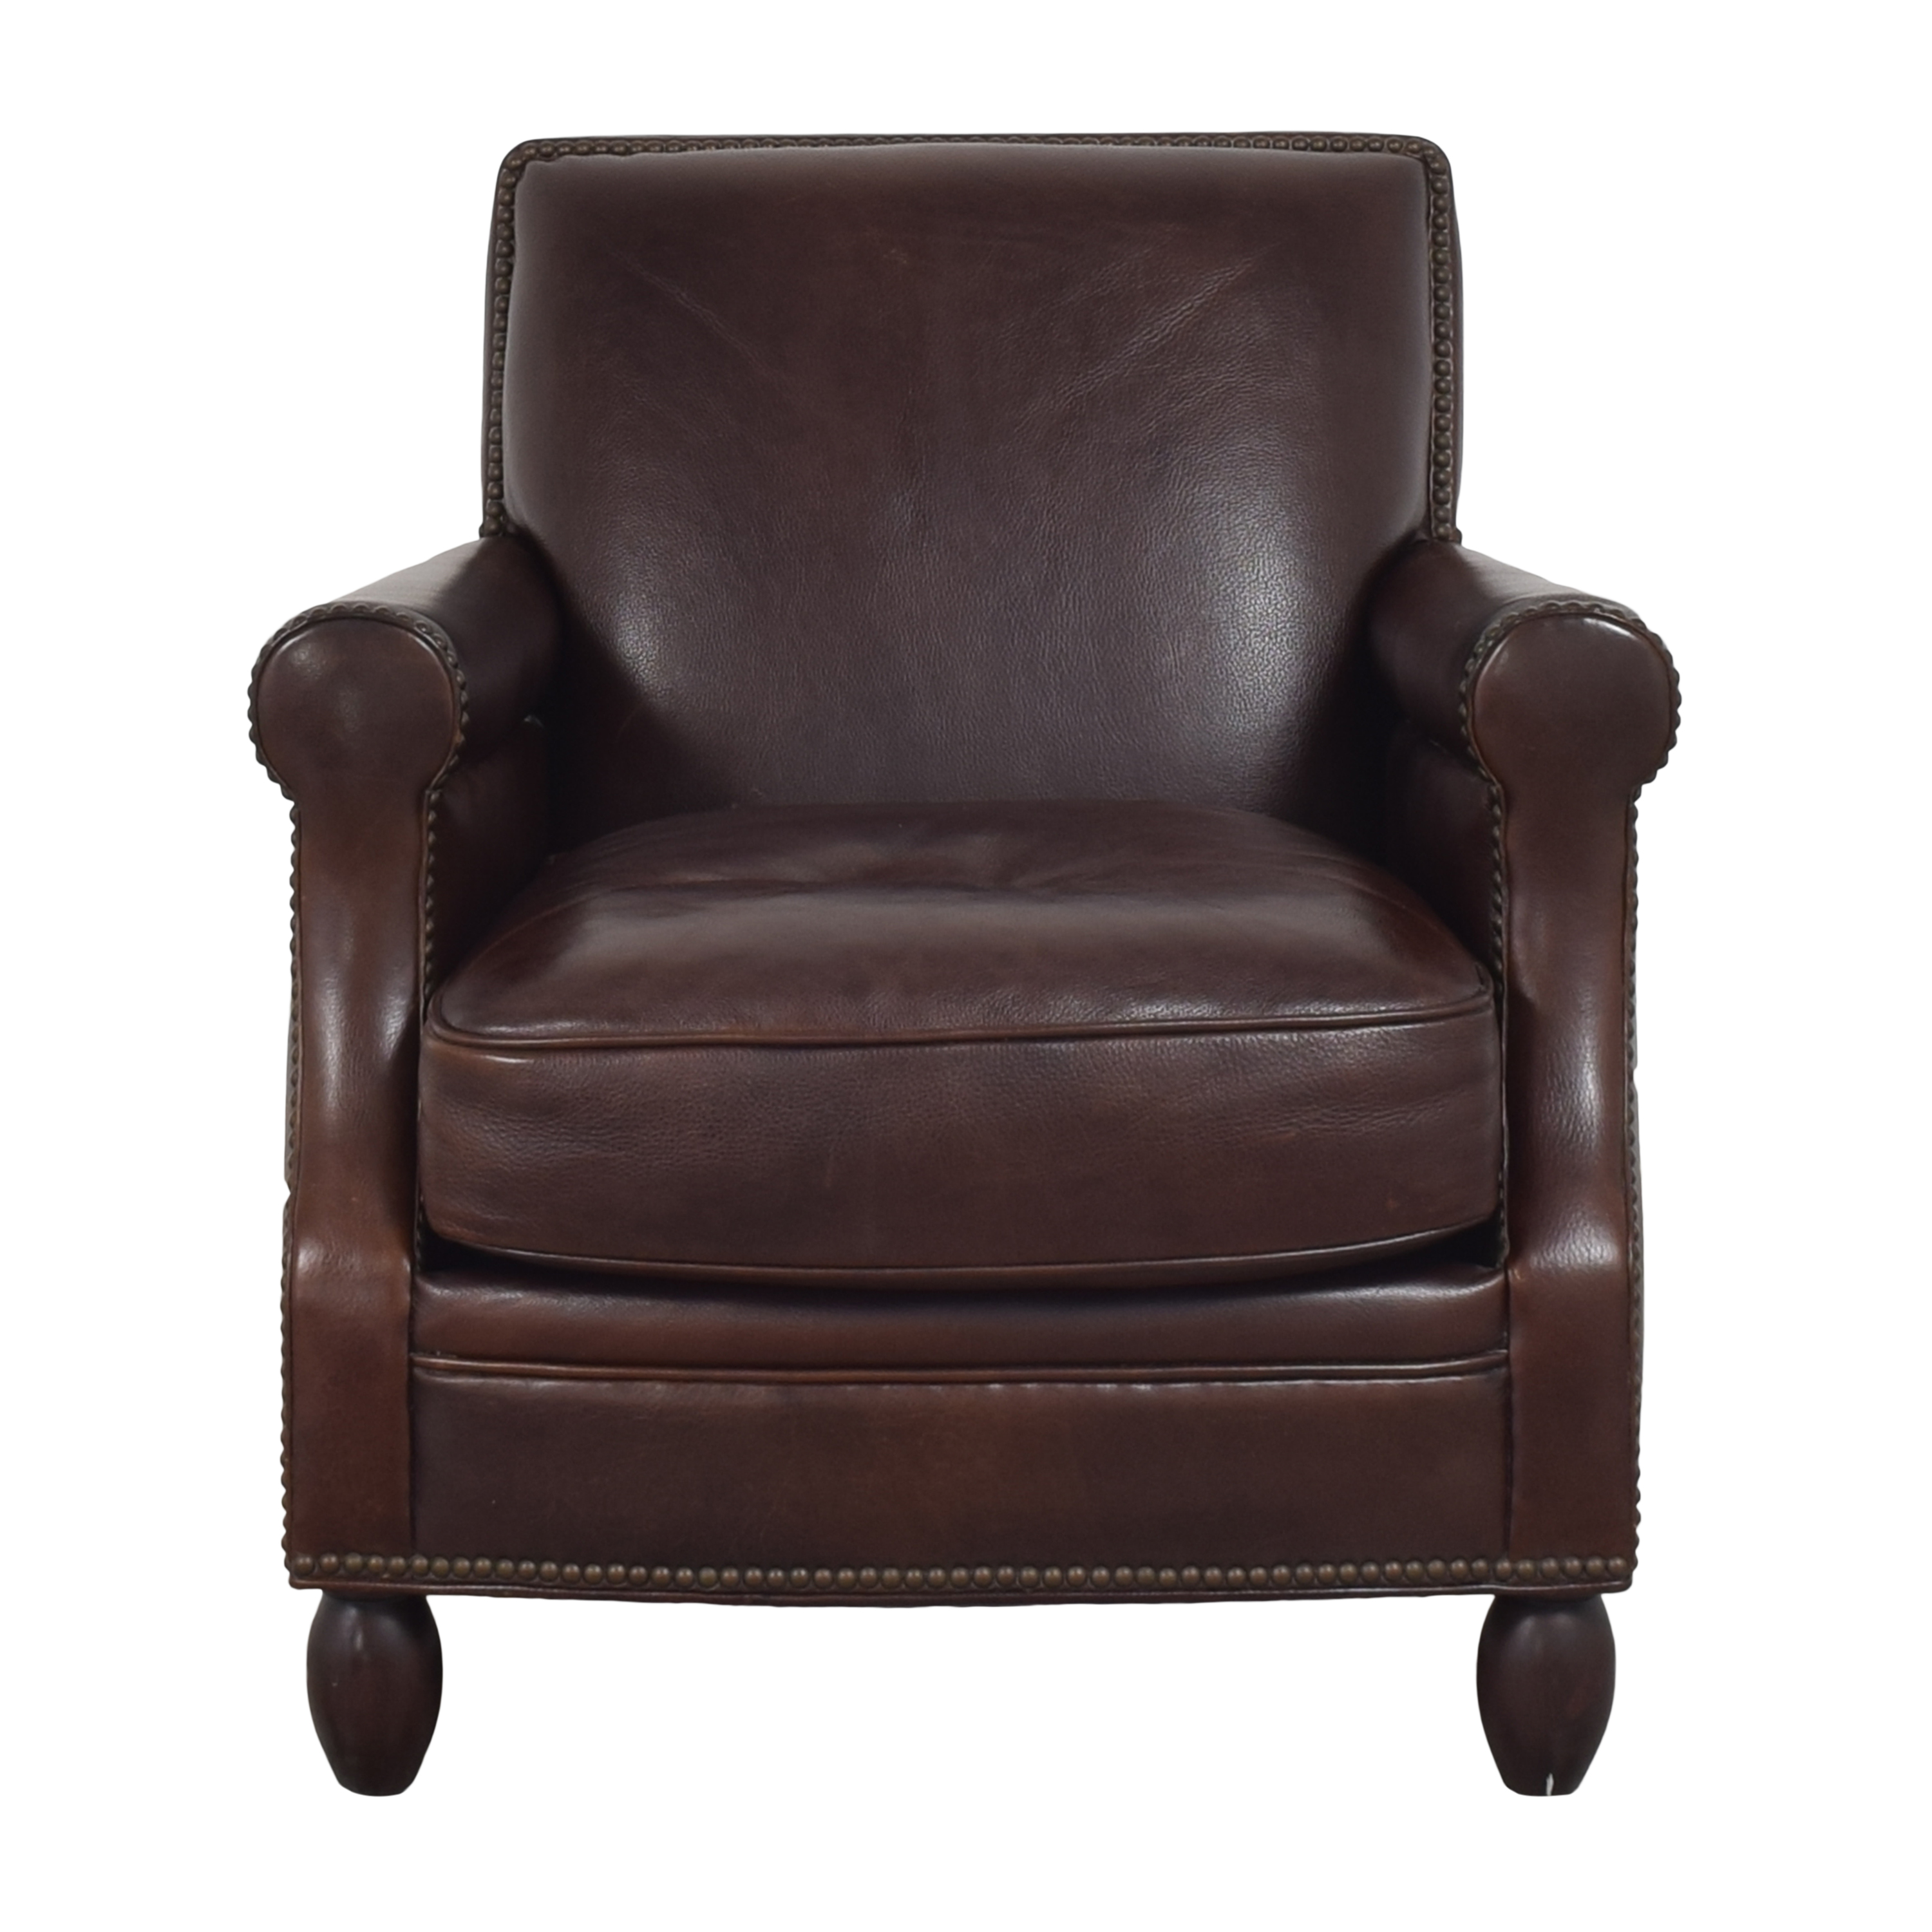 Bradington-Young Roll Arm Nailhead Accent Chair / Accent Chairs